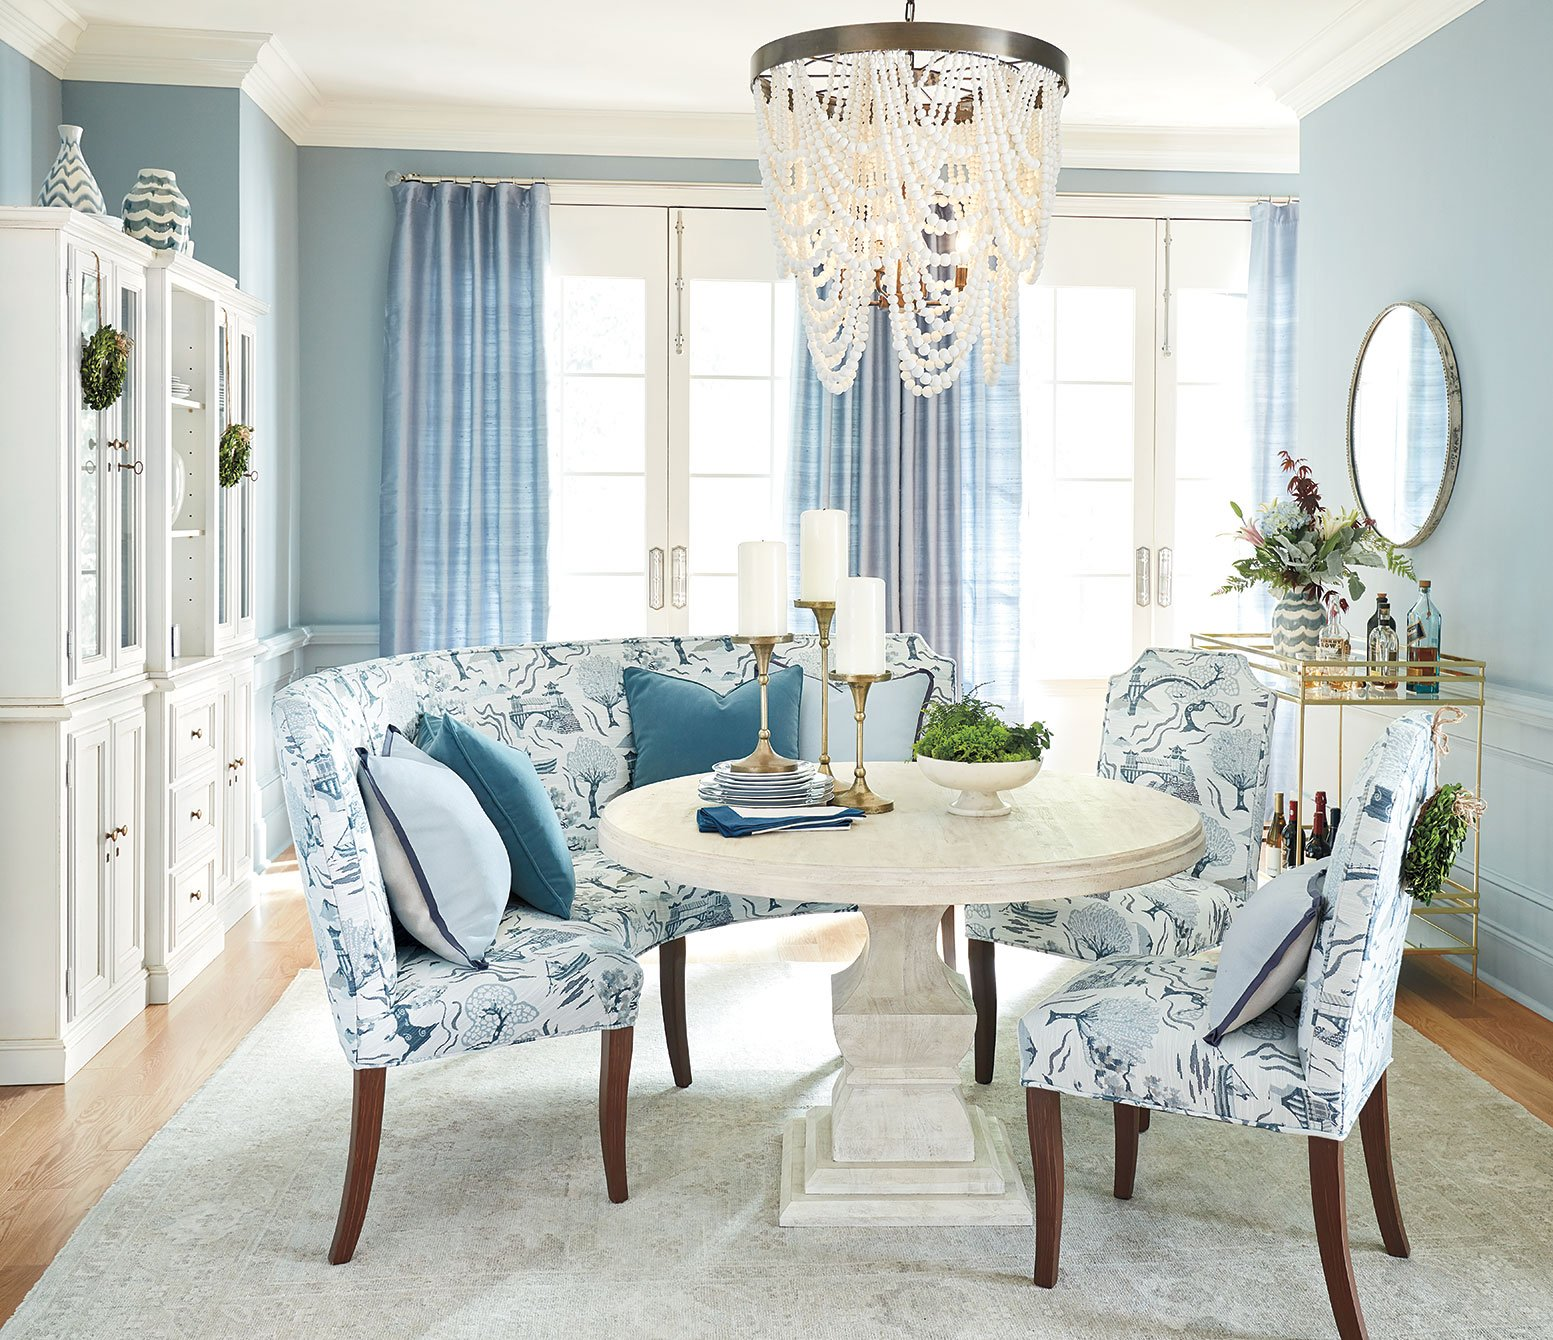 Cost to Furnish Your Home in 2020